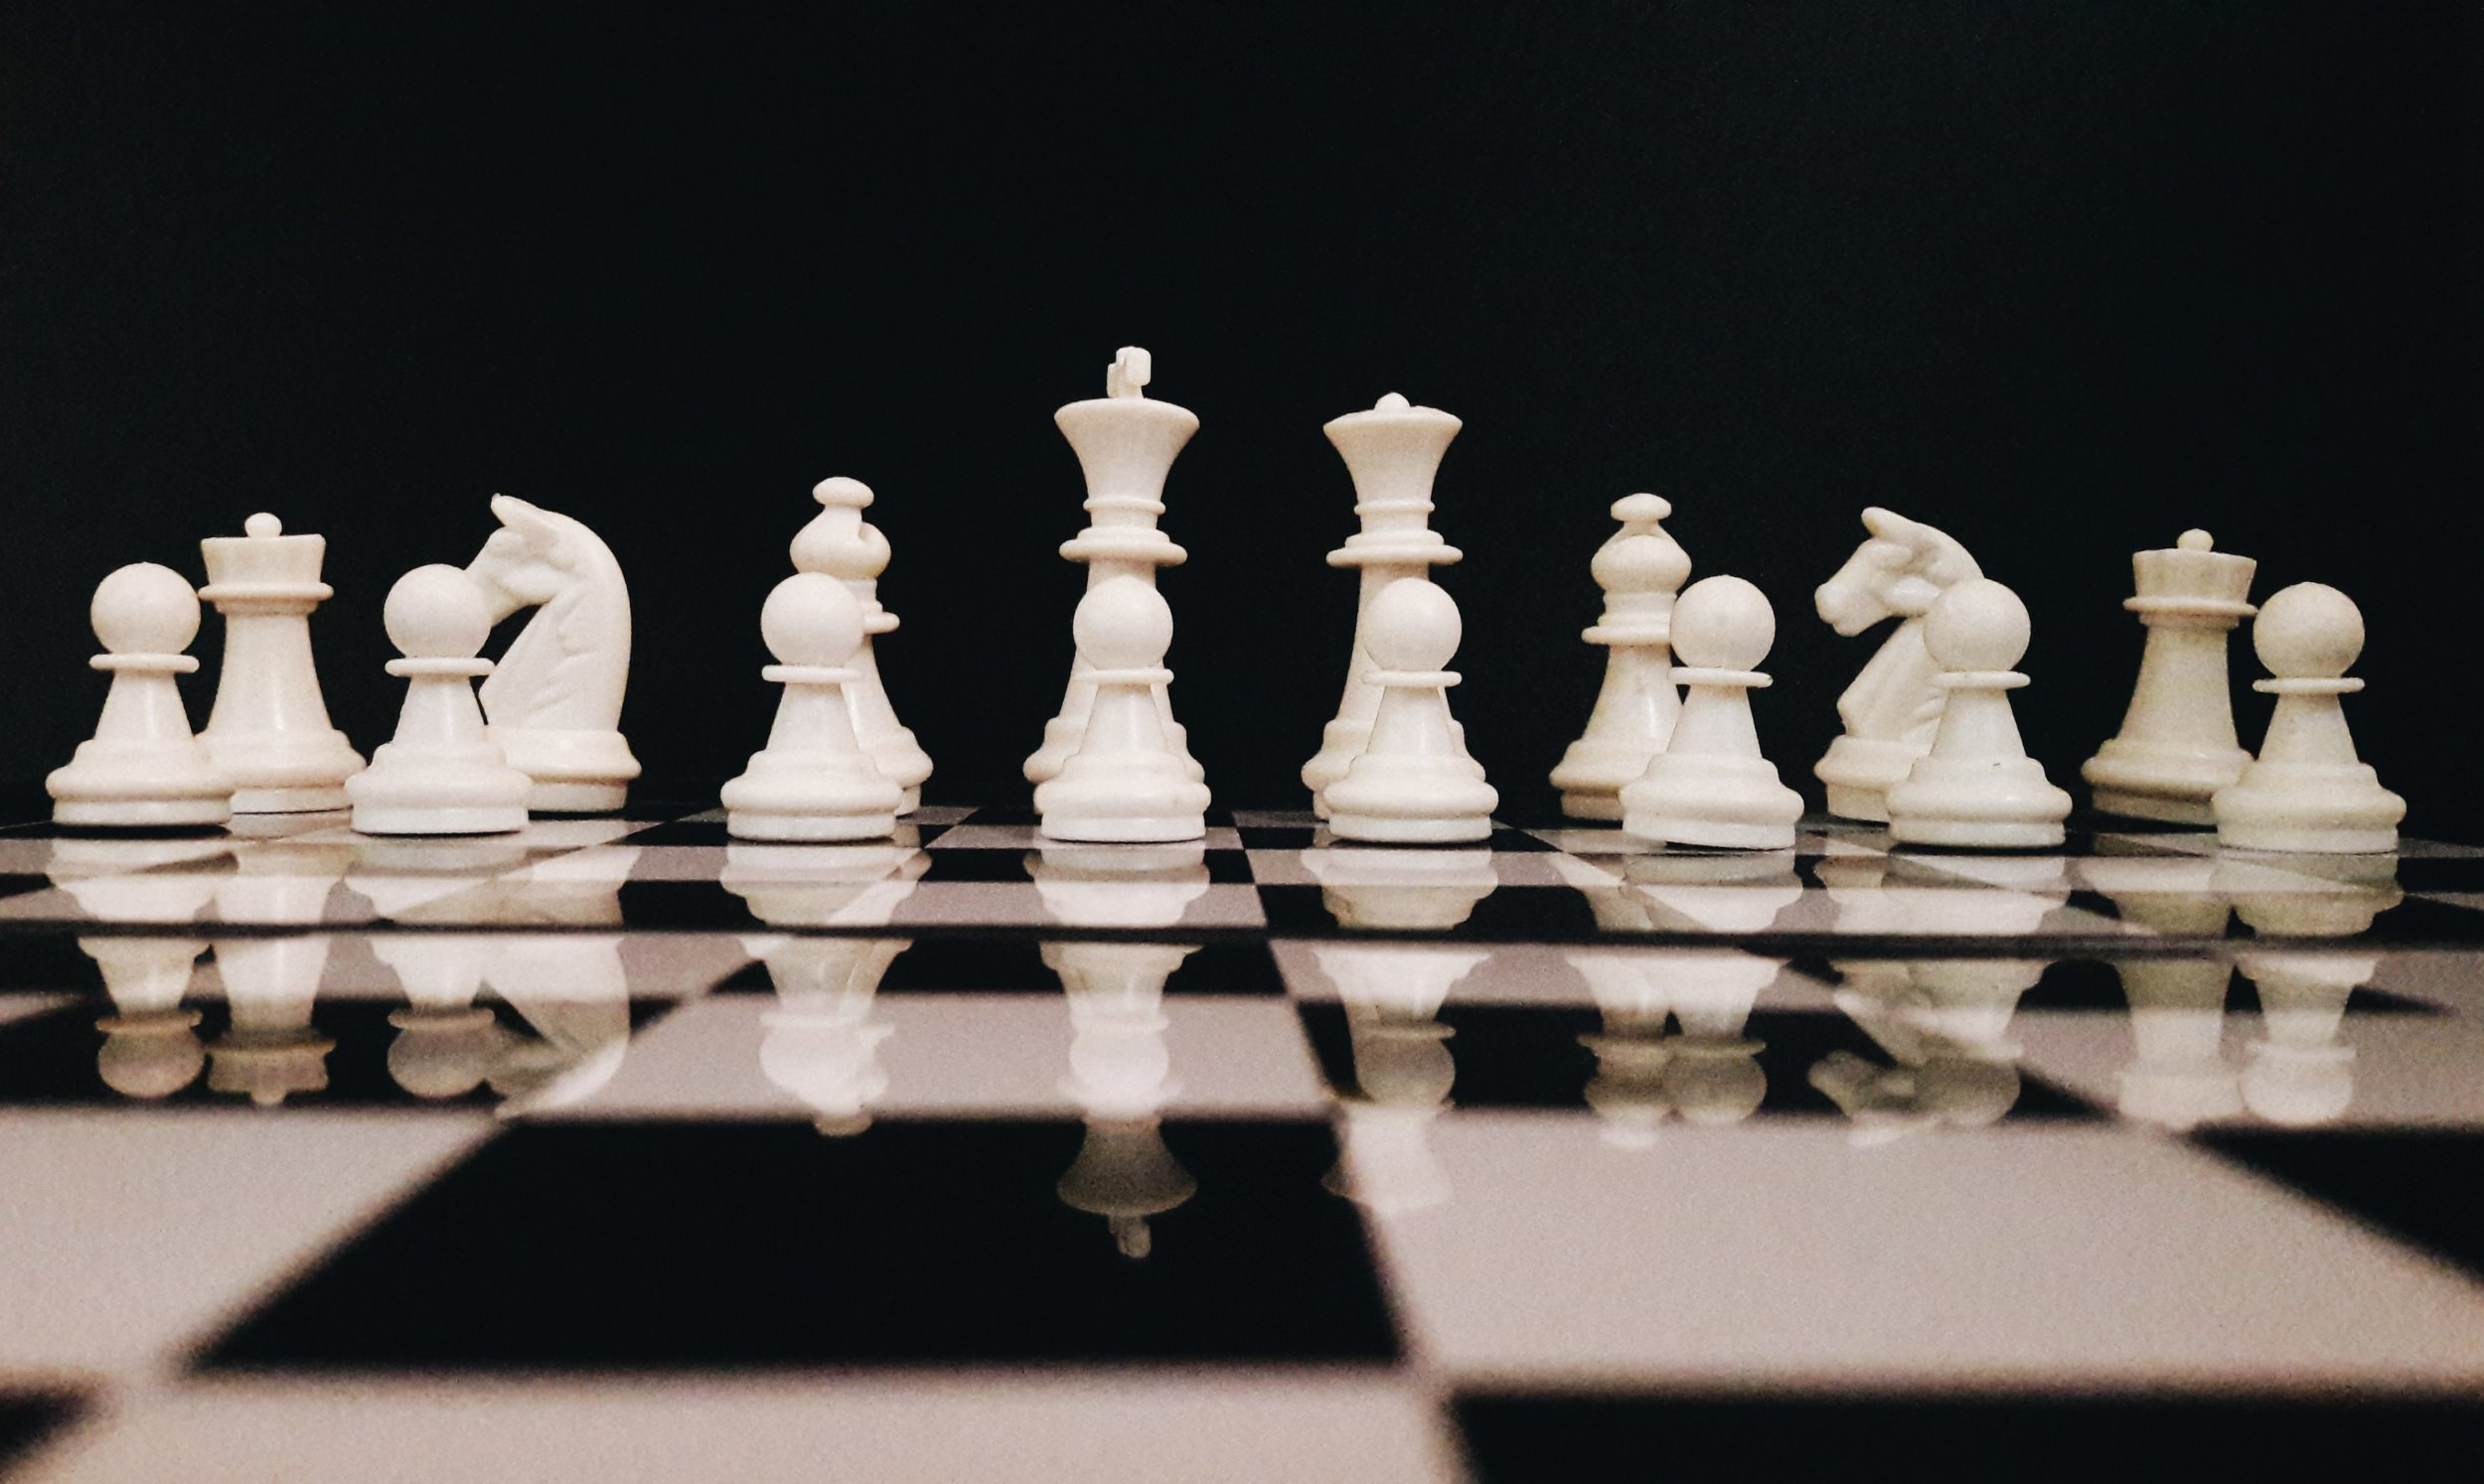 Chess Club - Fridays 1:05 – 2:05 pm in Room #14, for 1st – 8th gradeCost $100 for 8 weeks: $85 online before 9/9/18 deadlineInfo@chessKidz.org Registration form in office.